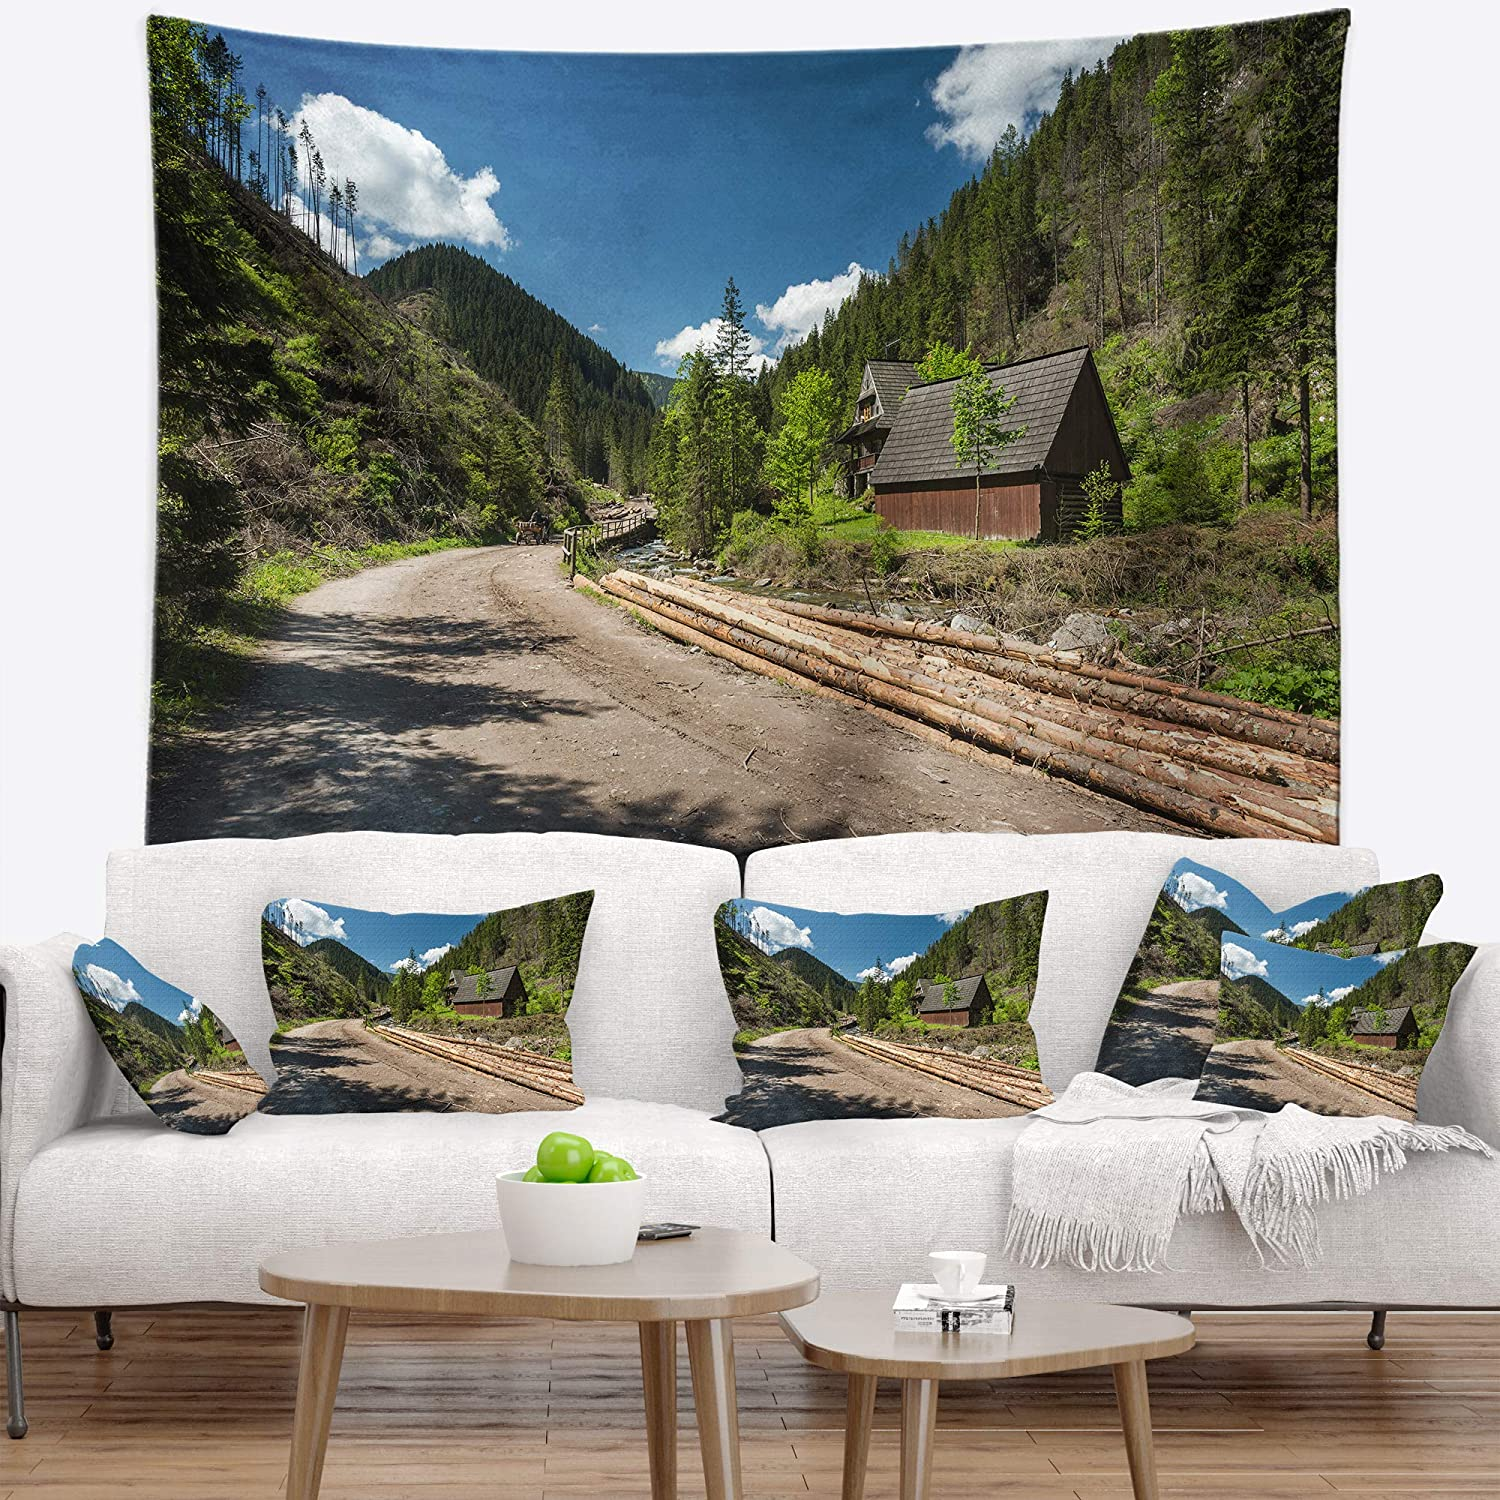 in x 68 in Designart TAP9871-80-68  Road in Chocholowska Valley Landscape Blanket D/écor Art for Home and Office Wall Tapestry x Large 80 in